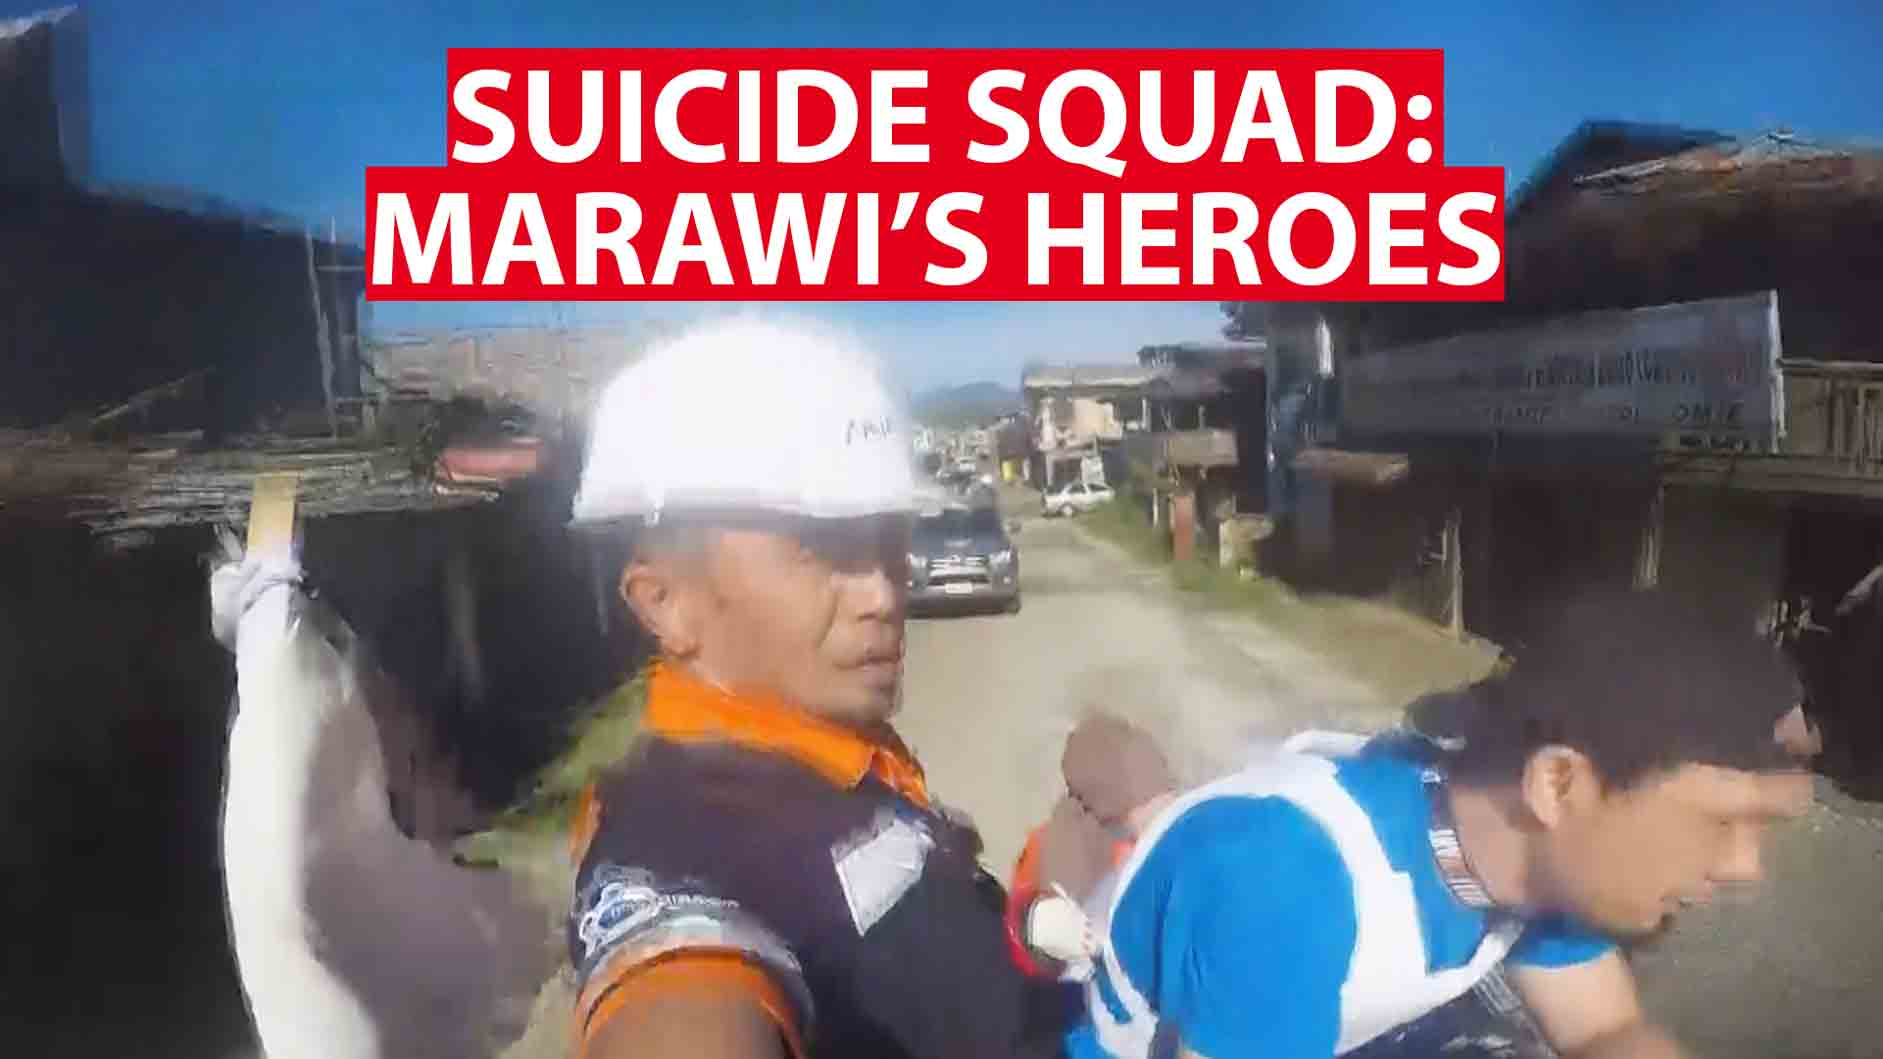 The real Suicide Squad: Heroes of Marawi